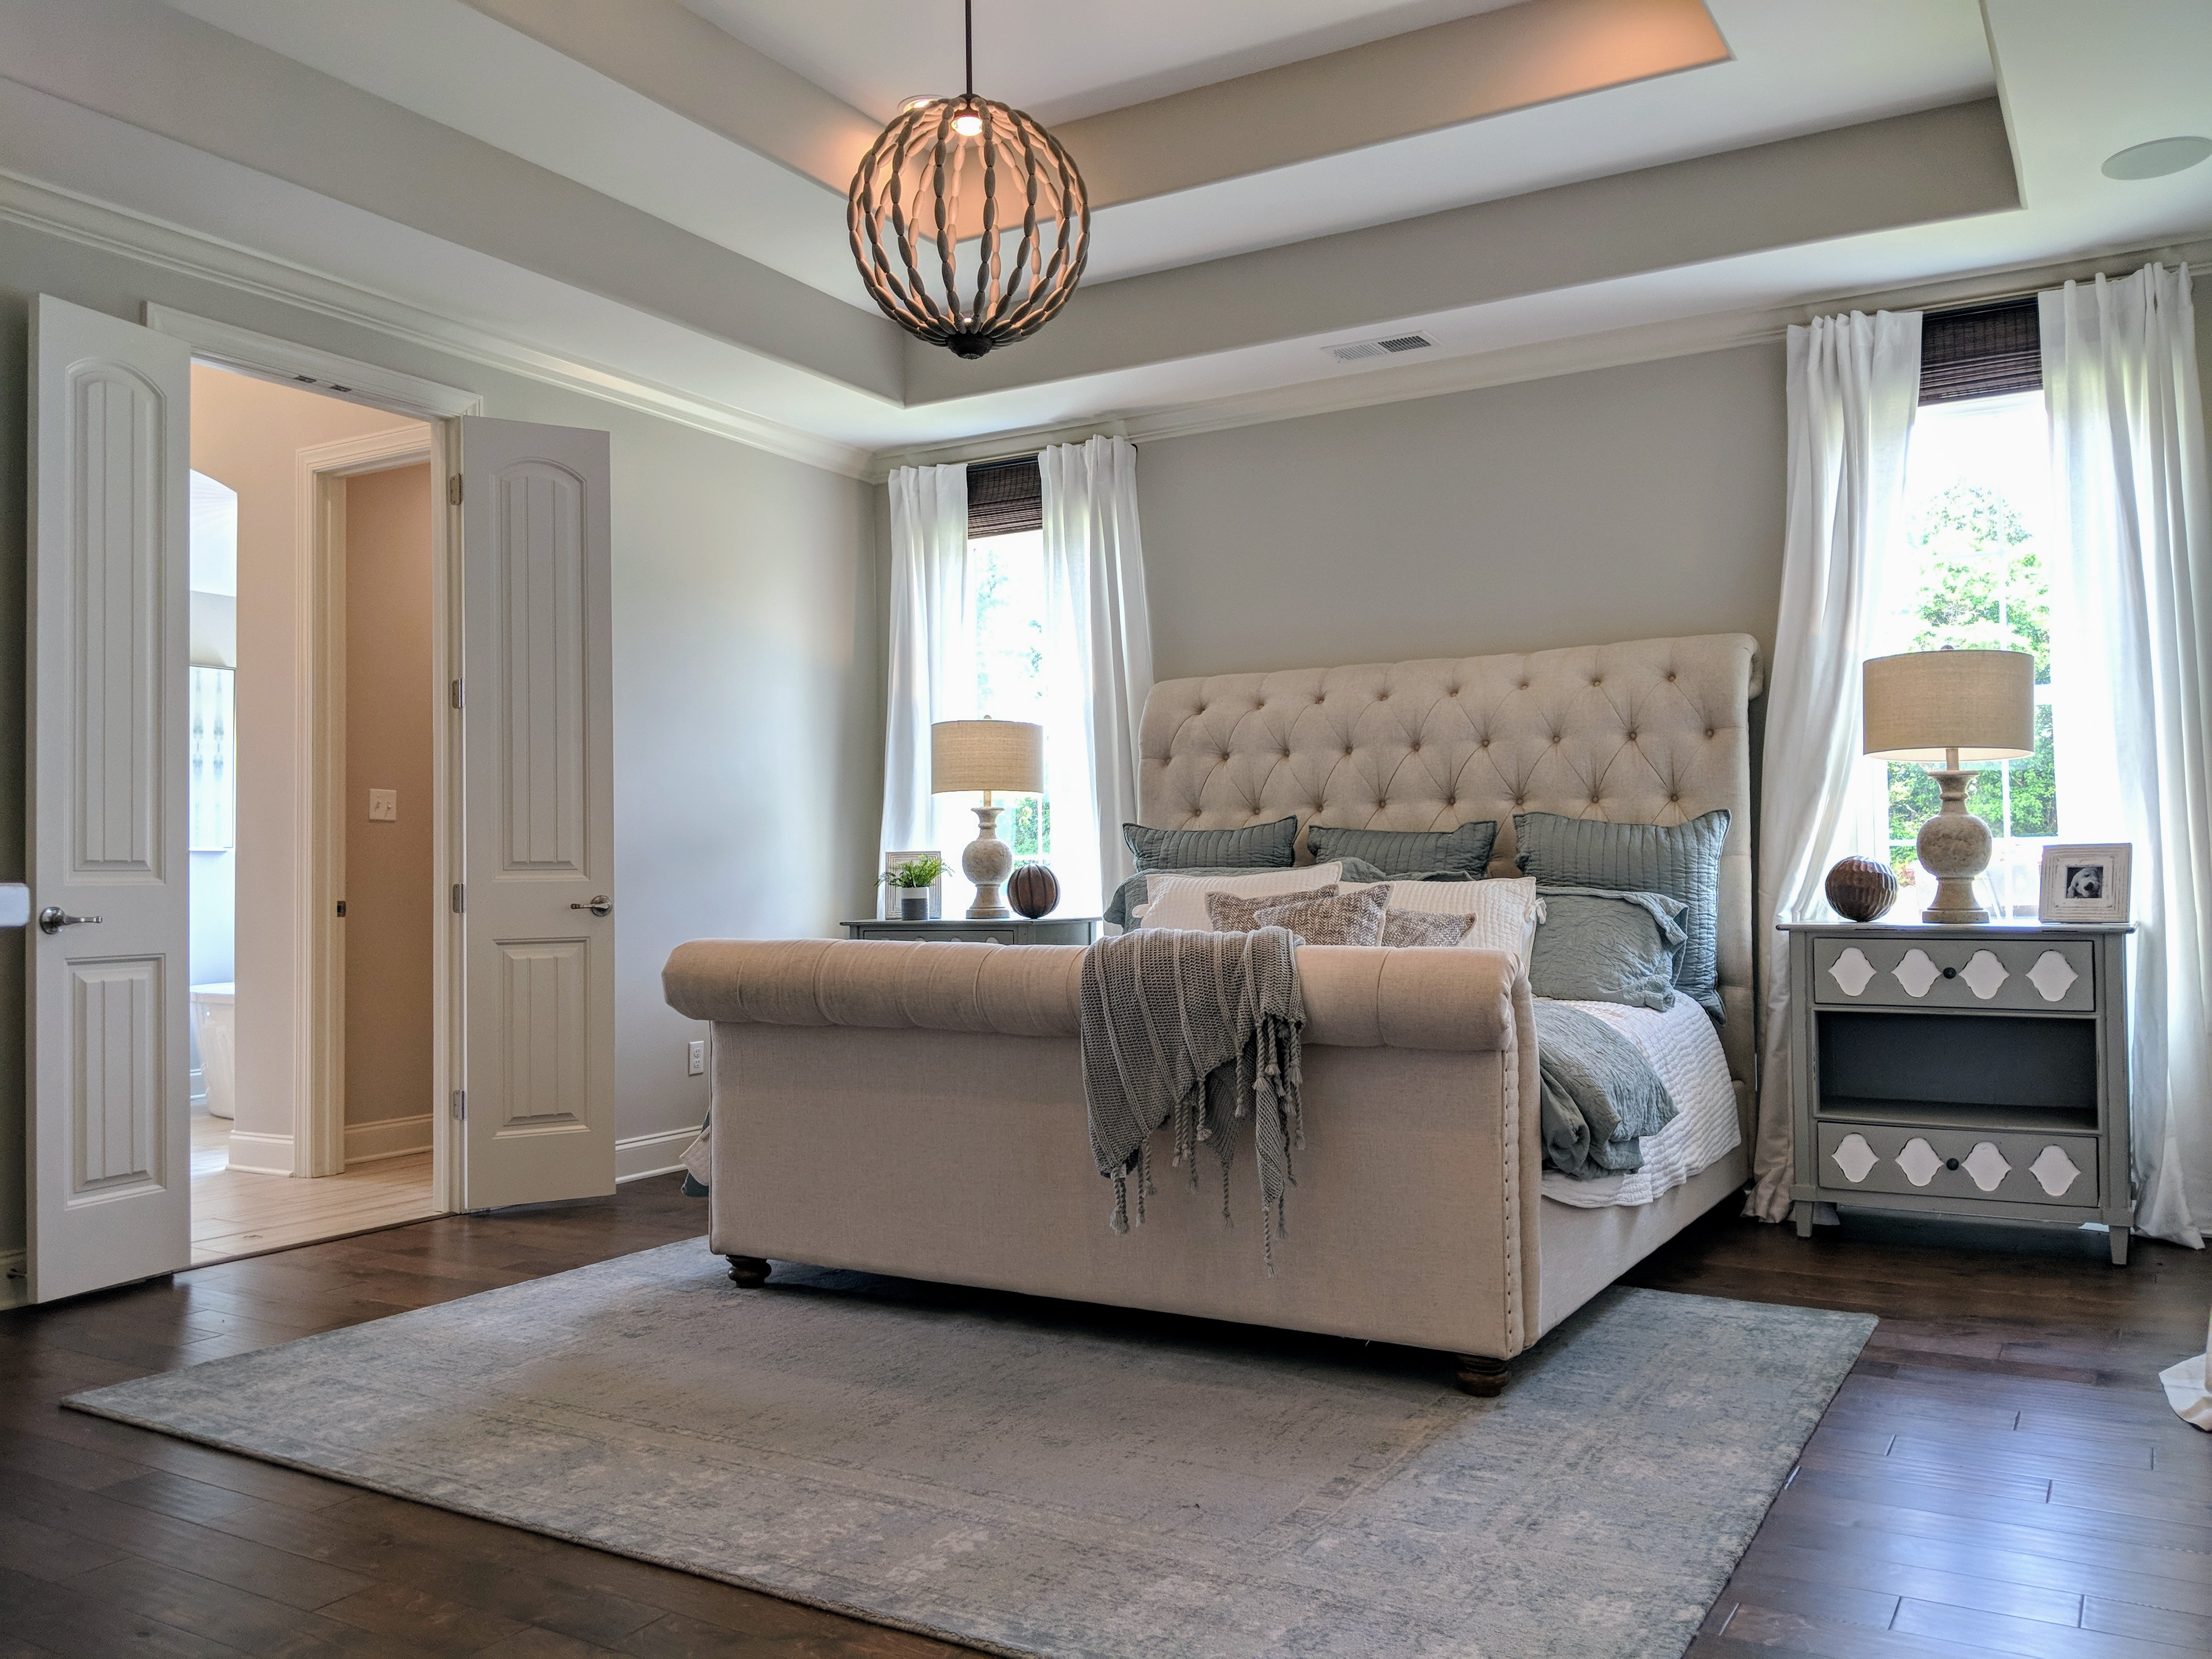 Homes for sales in Memphis area. Master bedroom with tall ceilings and tray ceilings.